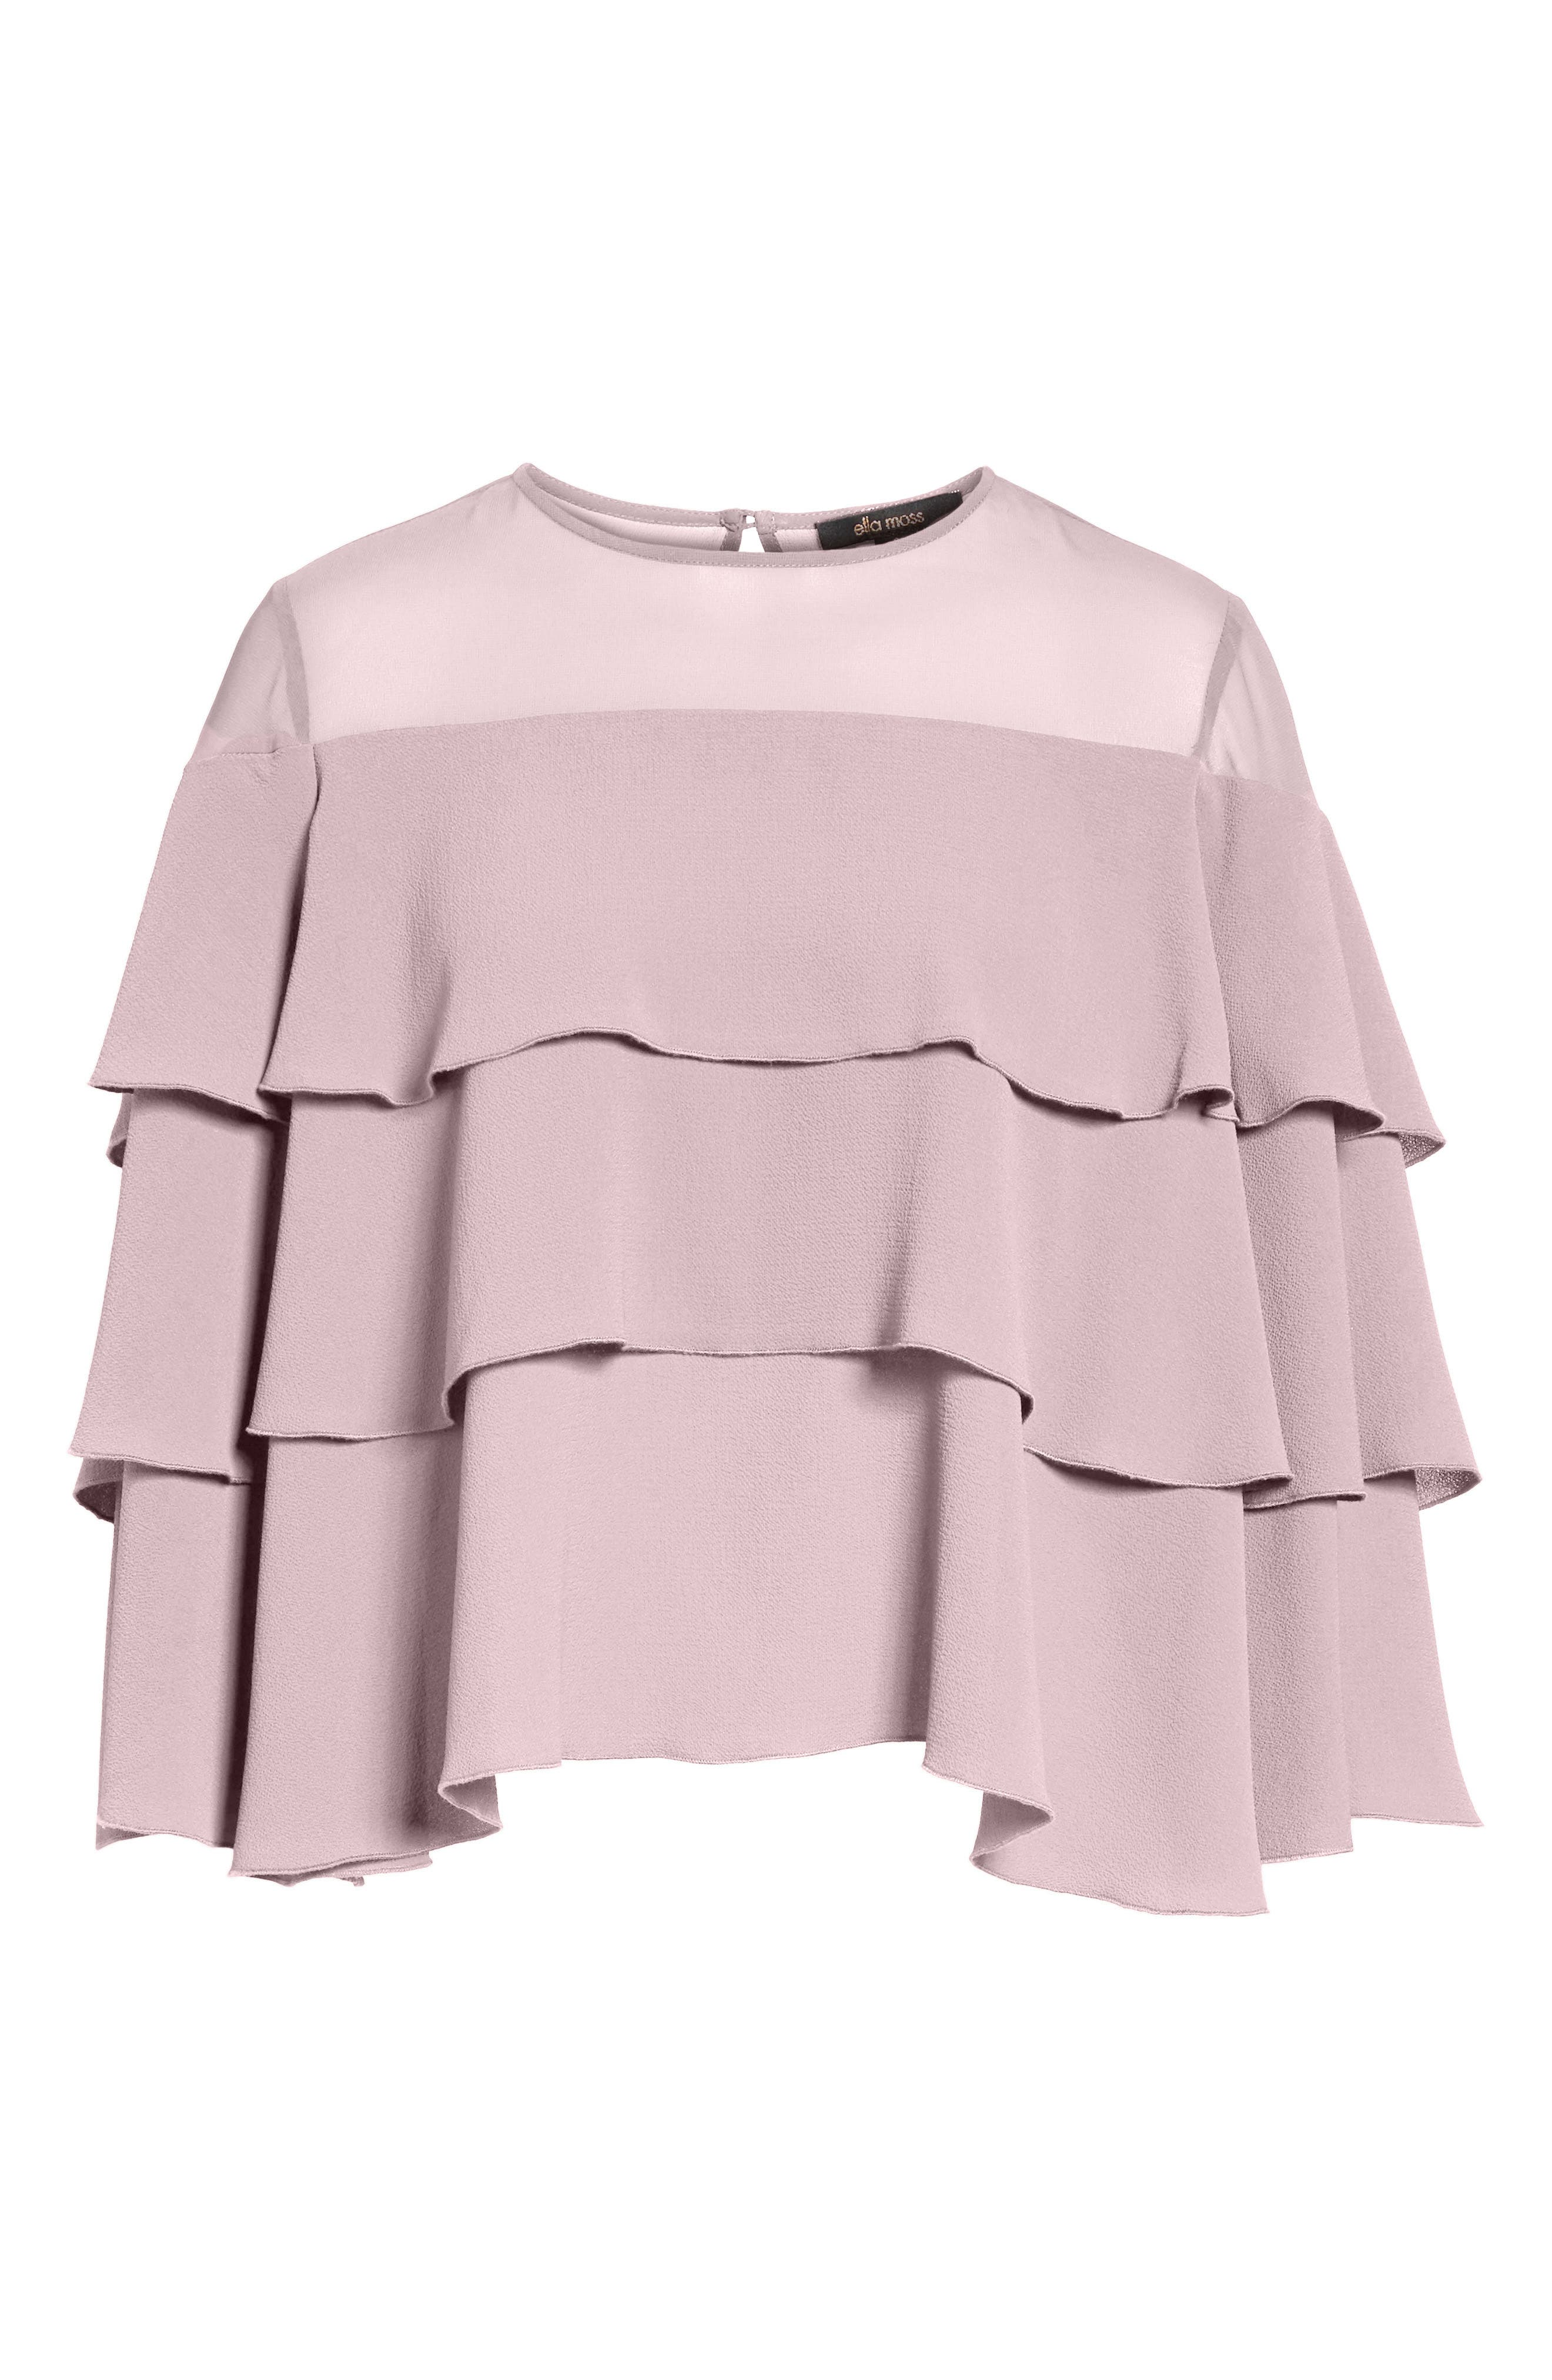 Medena Tiered Ruffle Top,                             Alternate thumbnail 6, color,                             Pale Lavender